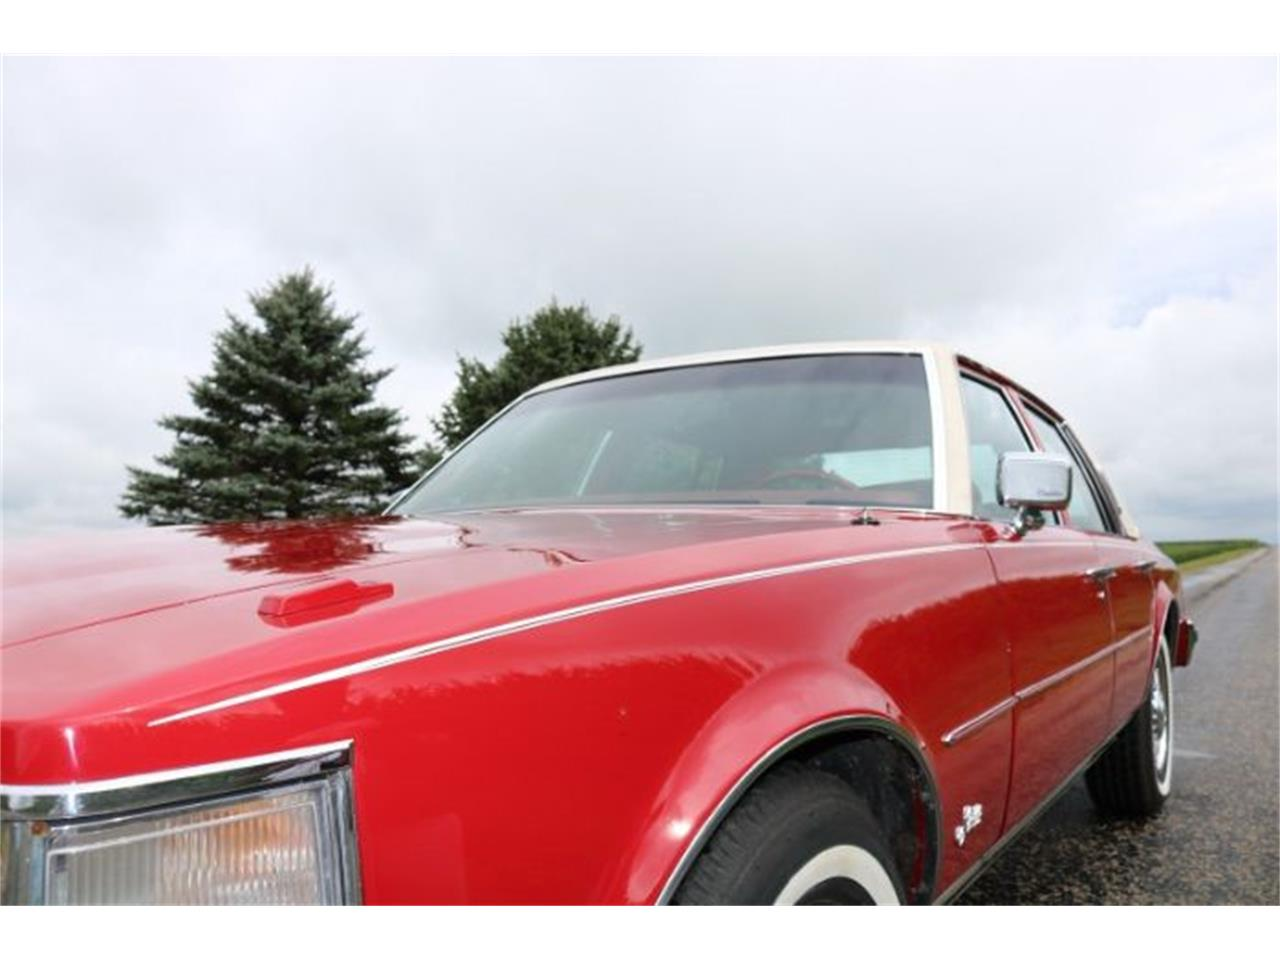 1979 Cadillac Seville for sale in Cadillac, MI – photo 6